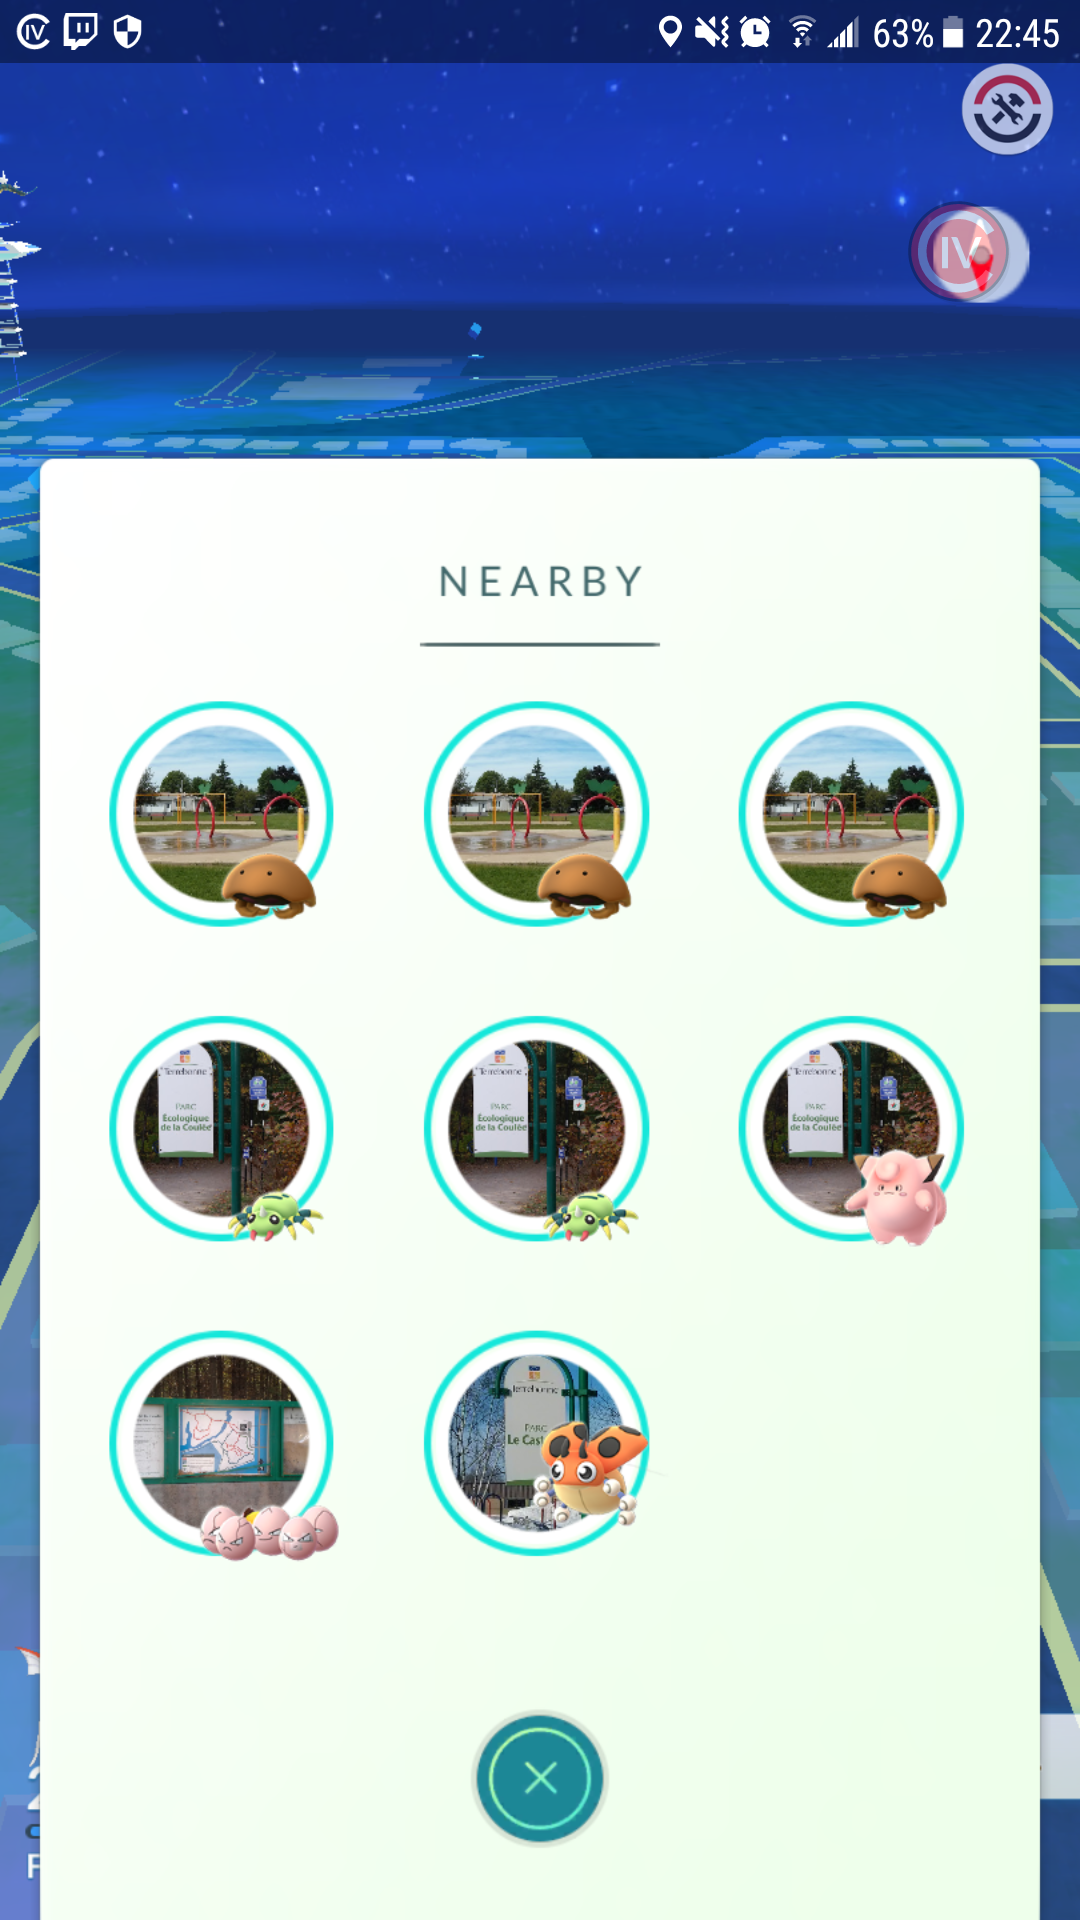 [Screenshot] I think I found a nest.